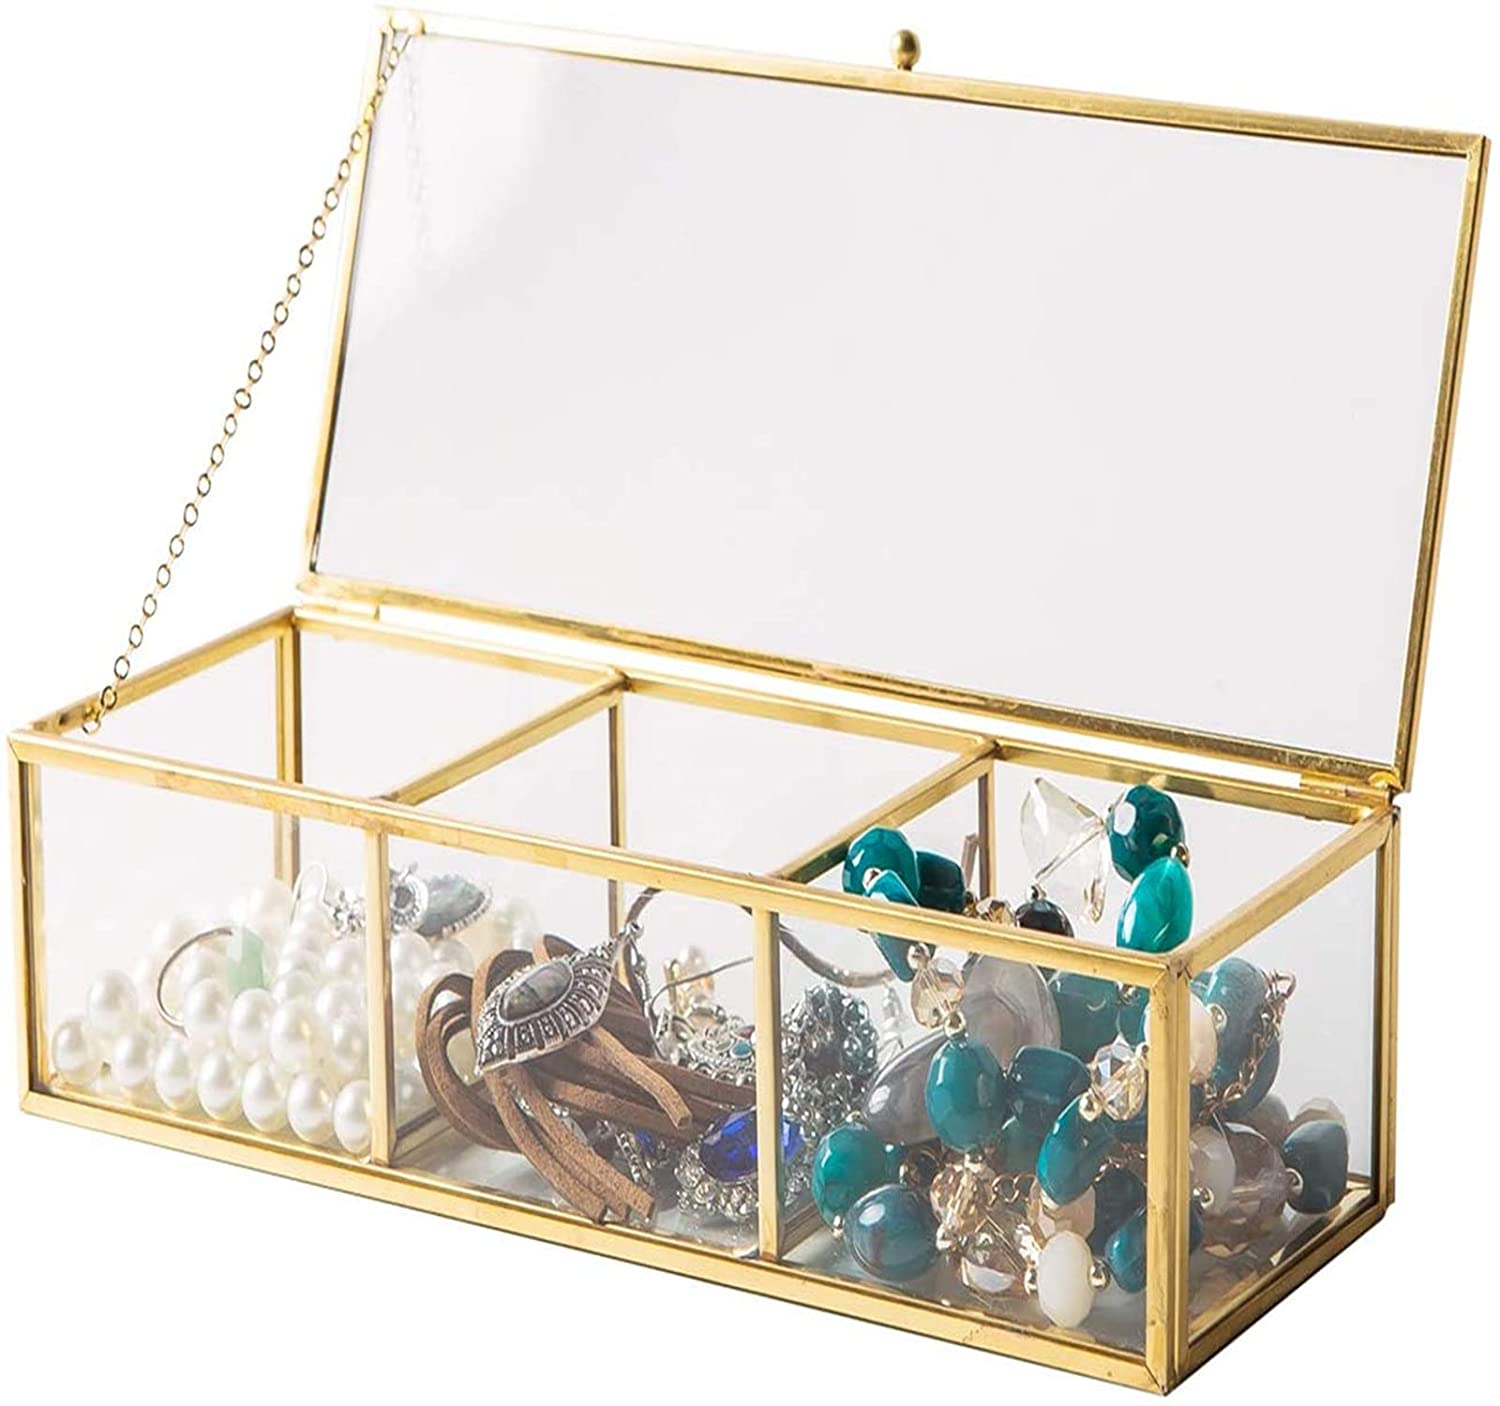 Vintage Golden Glass Lidded Box Clear Glass & Brass Metal Storage Jewelry and Cosmetic Makeup Organizer with Lid Beauty Display, Rectangle with 3 Compartment